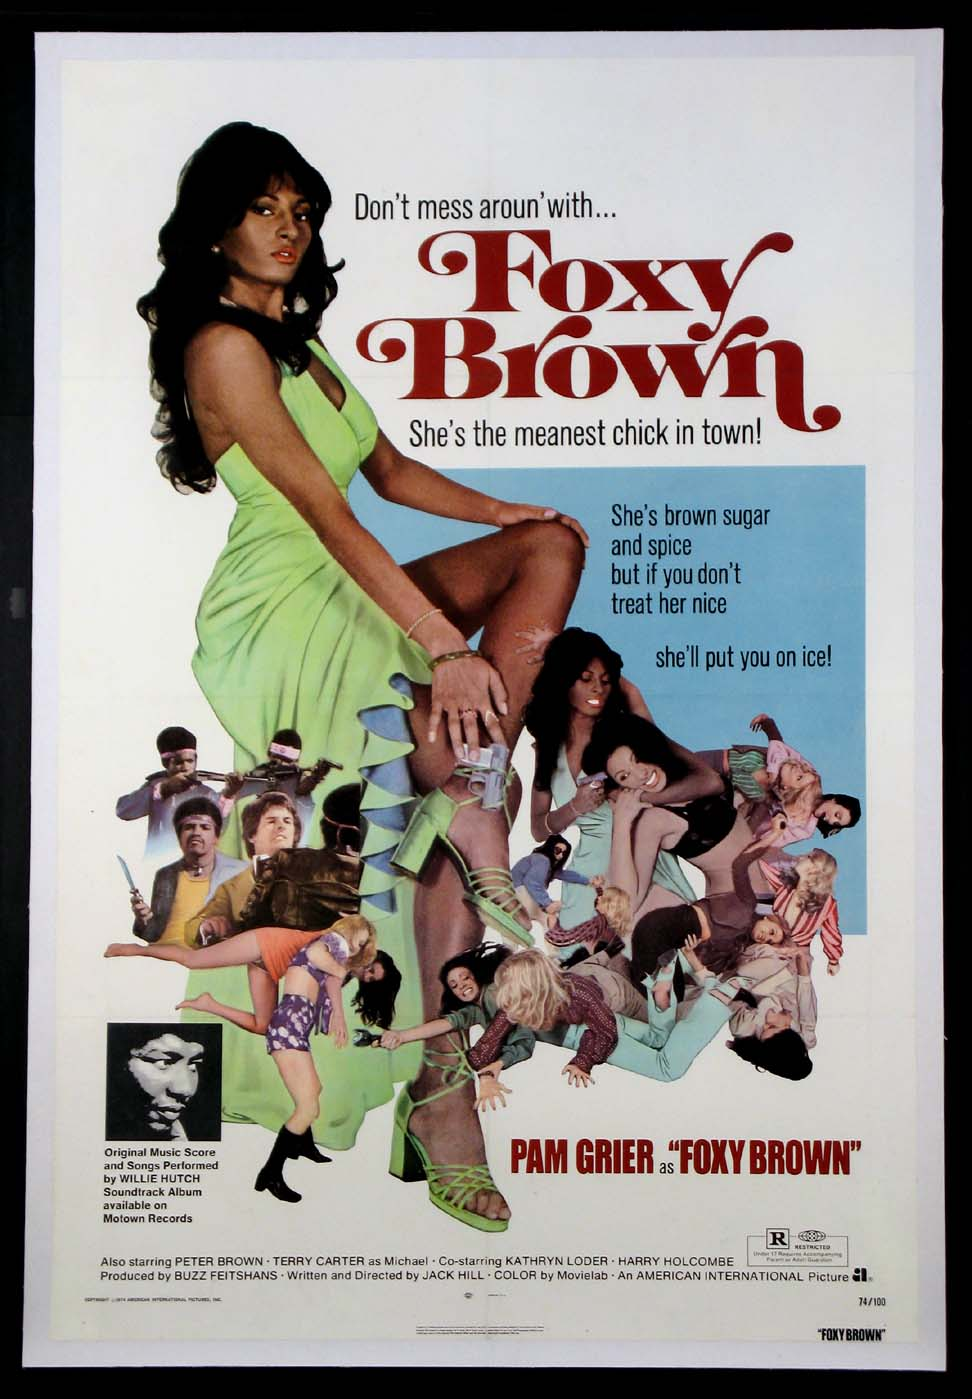 FOXY BROWN @ FilmPosters.com